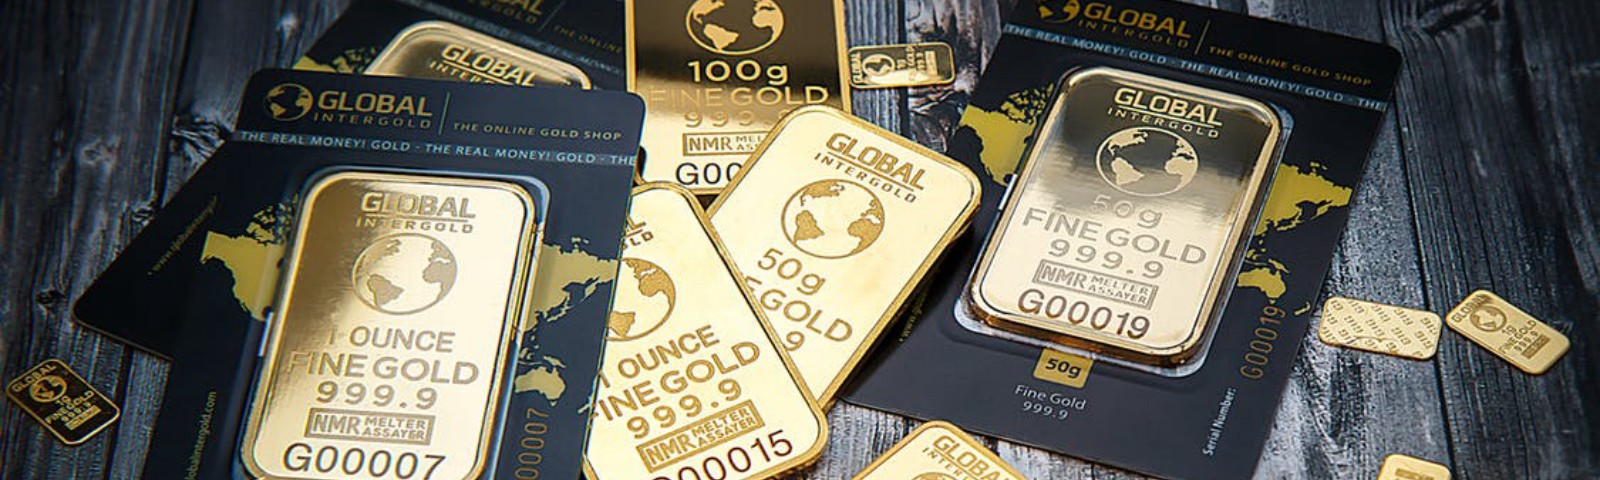 Many gold bars on a wooden table.